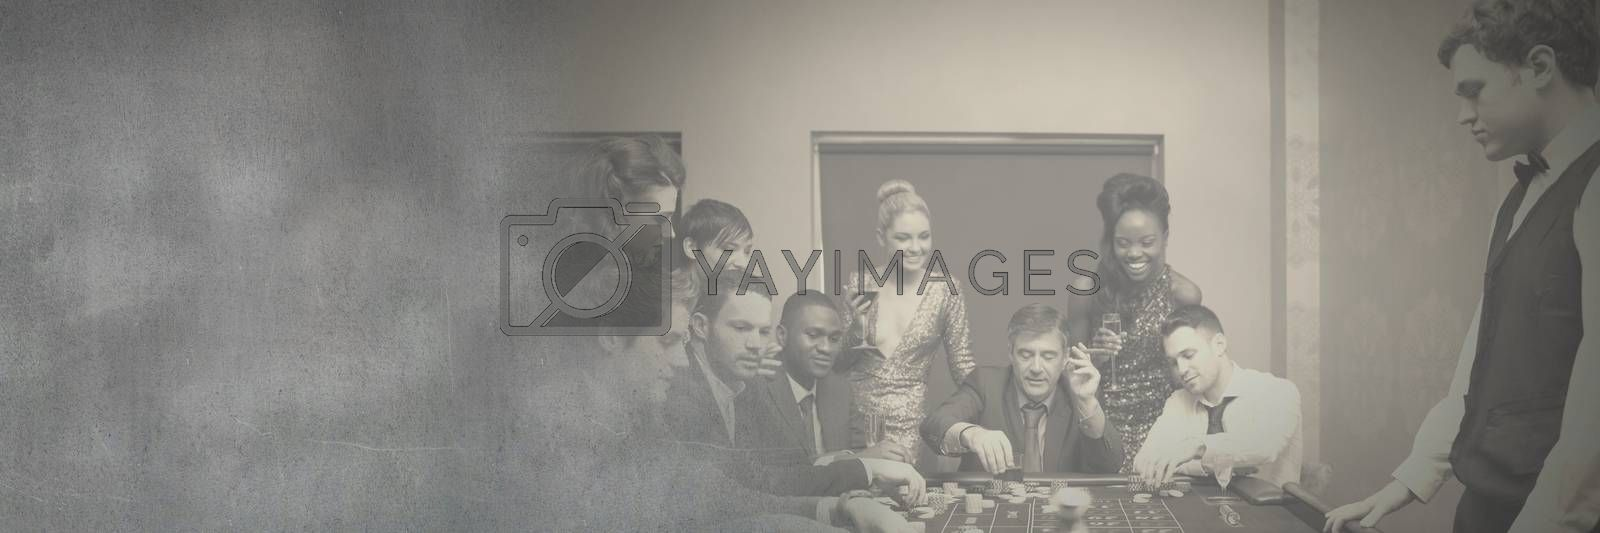 Digital composite of Group of people in casino